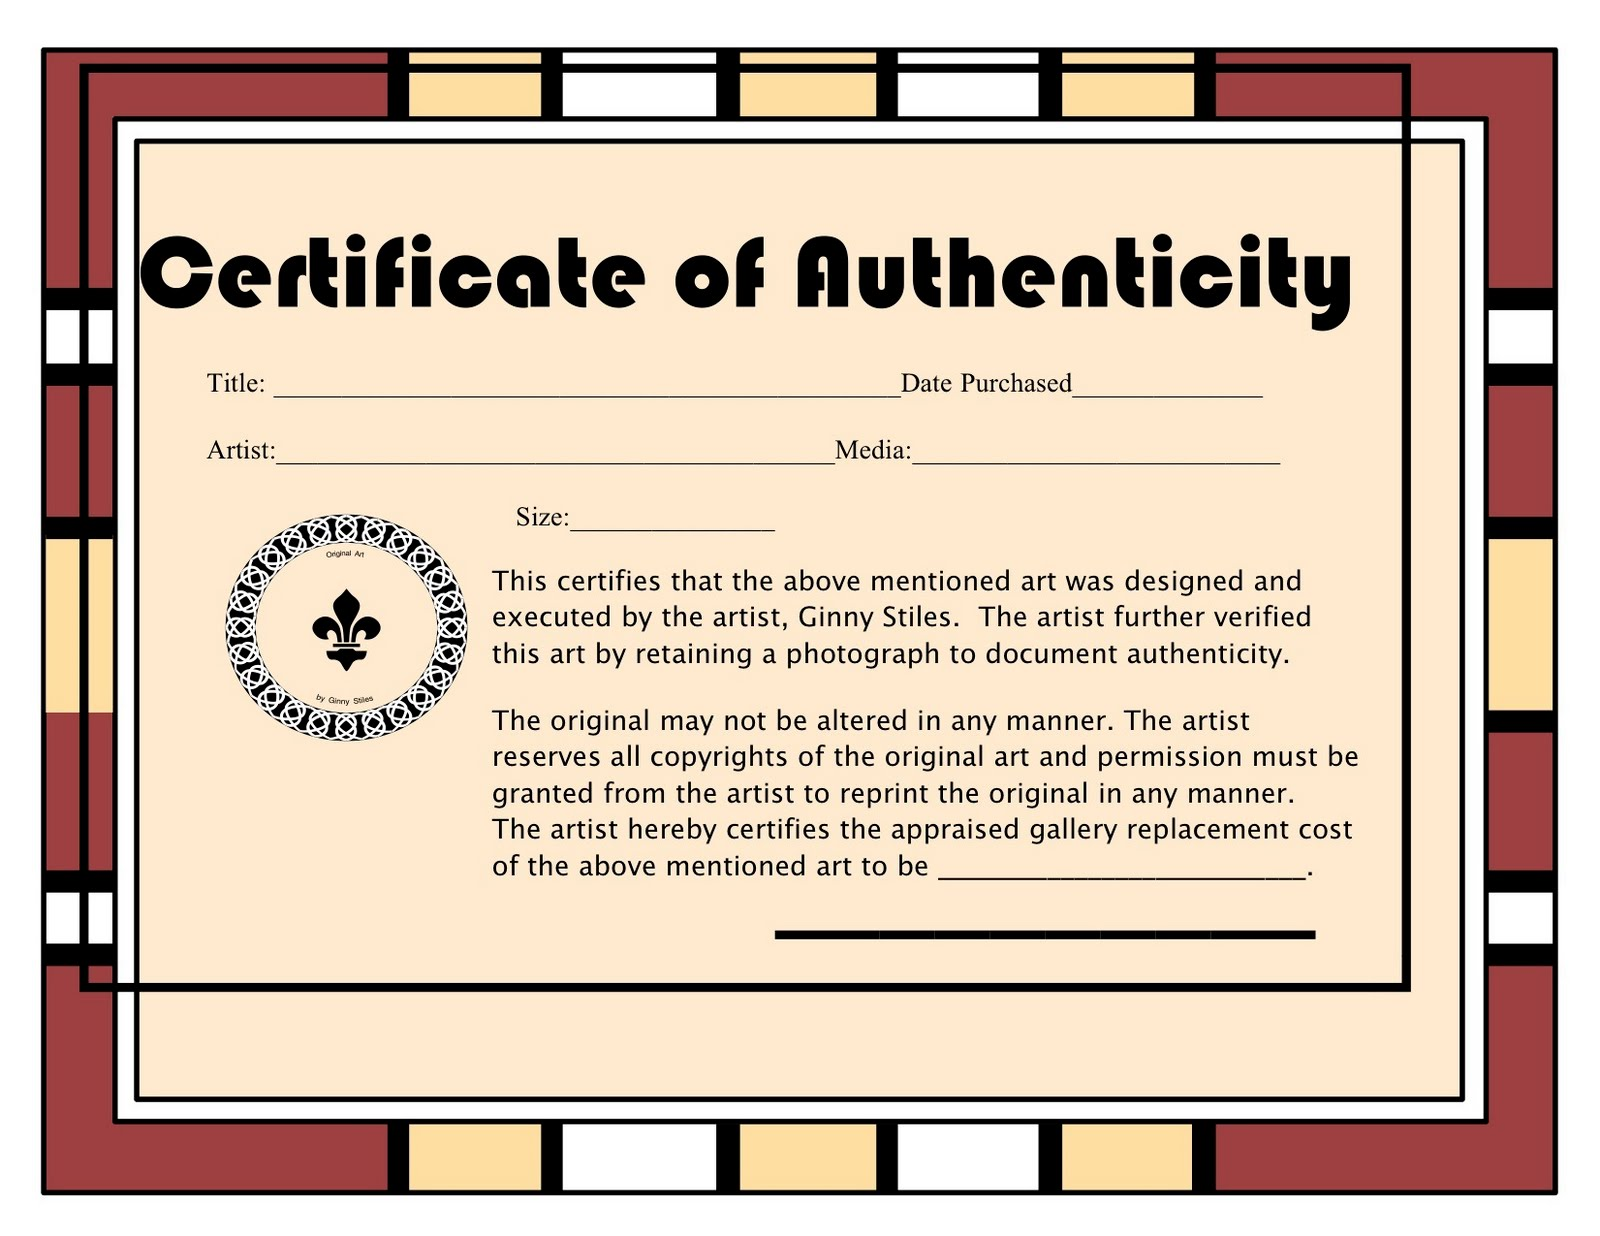 artist certificate of authenticity template - an artist labyrinth ginny stiles czt certificate of